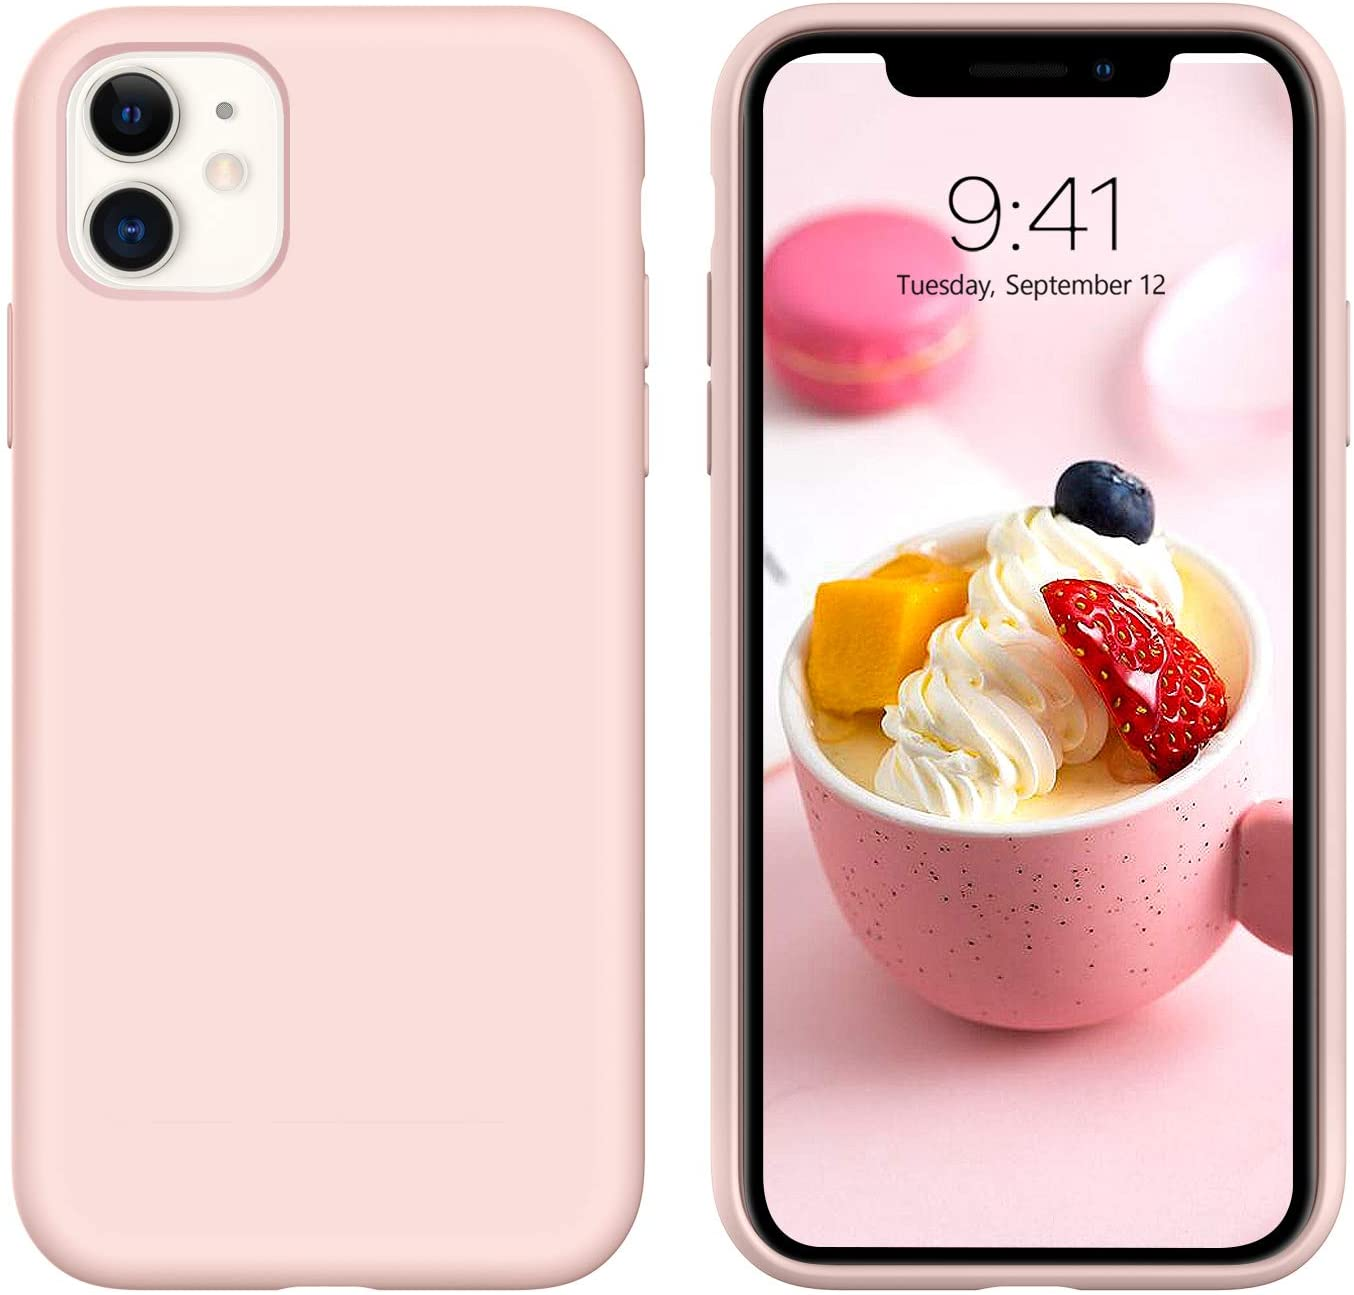 """iPhone 11 Case Silicone,DUEDUE Liquid Silicone Soft Gel Rubber Slim Cover with Microfiber Cloth Lining Cushion Shockproof Full Body Protective Case for iPhone 11 6.1"""" 2019,Pink Sand"""